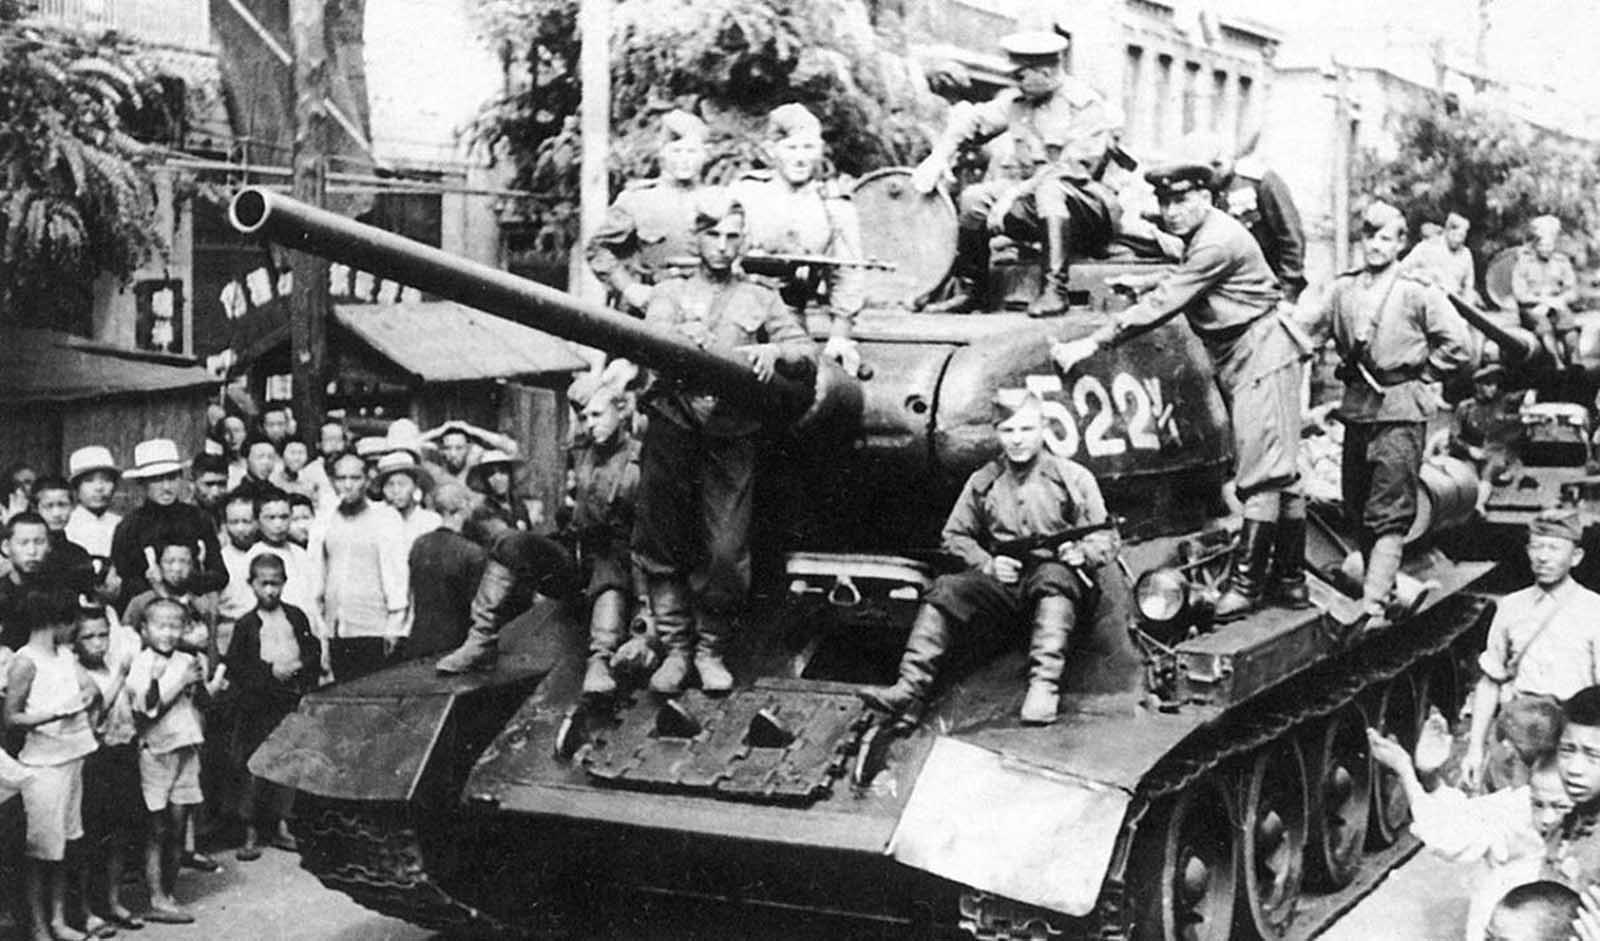 On August 9, 1945, the Soviet Union invaded Manchuria, sending more than a million soldiers to attack Japan's Kwantung Army. The Soviets quickly defeated the poorly-prepared Japanese, putting further pressure on them to surrender to the Allies. Here, a column of tanks appears on the streets of the Chinese city of Dalian.